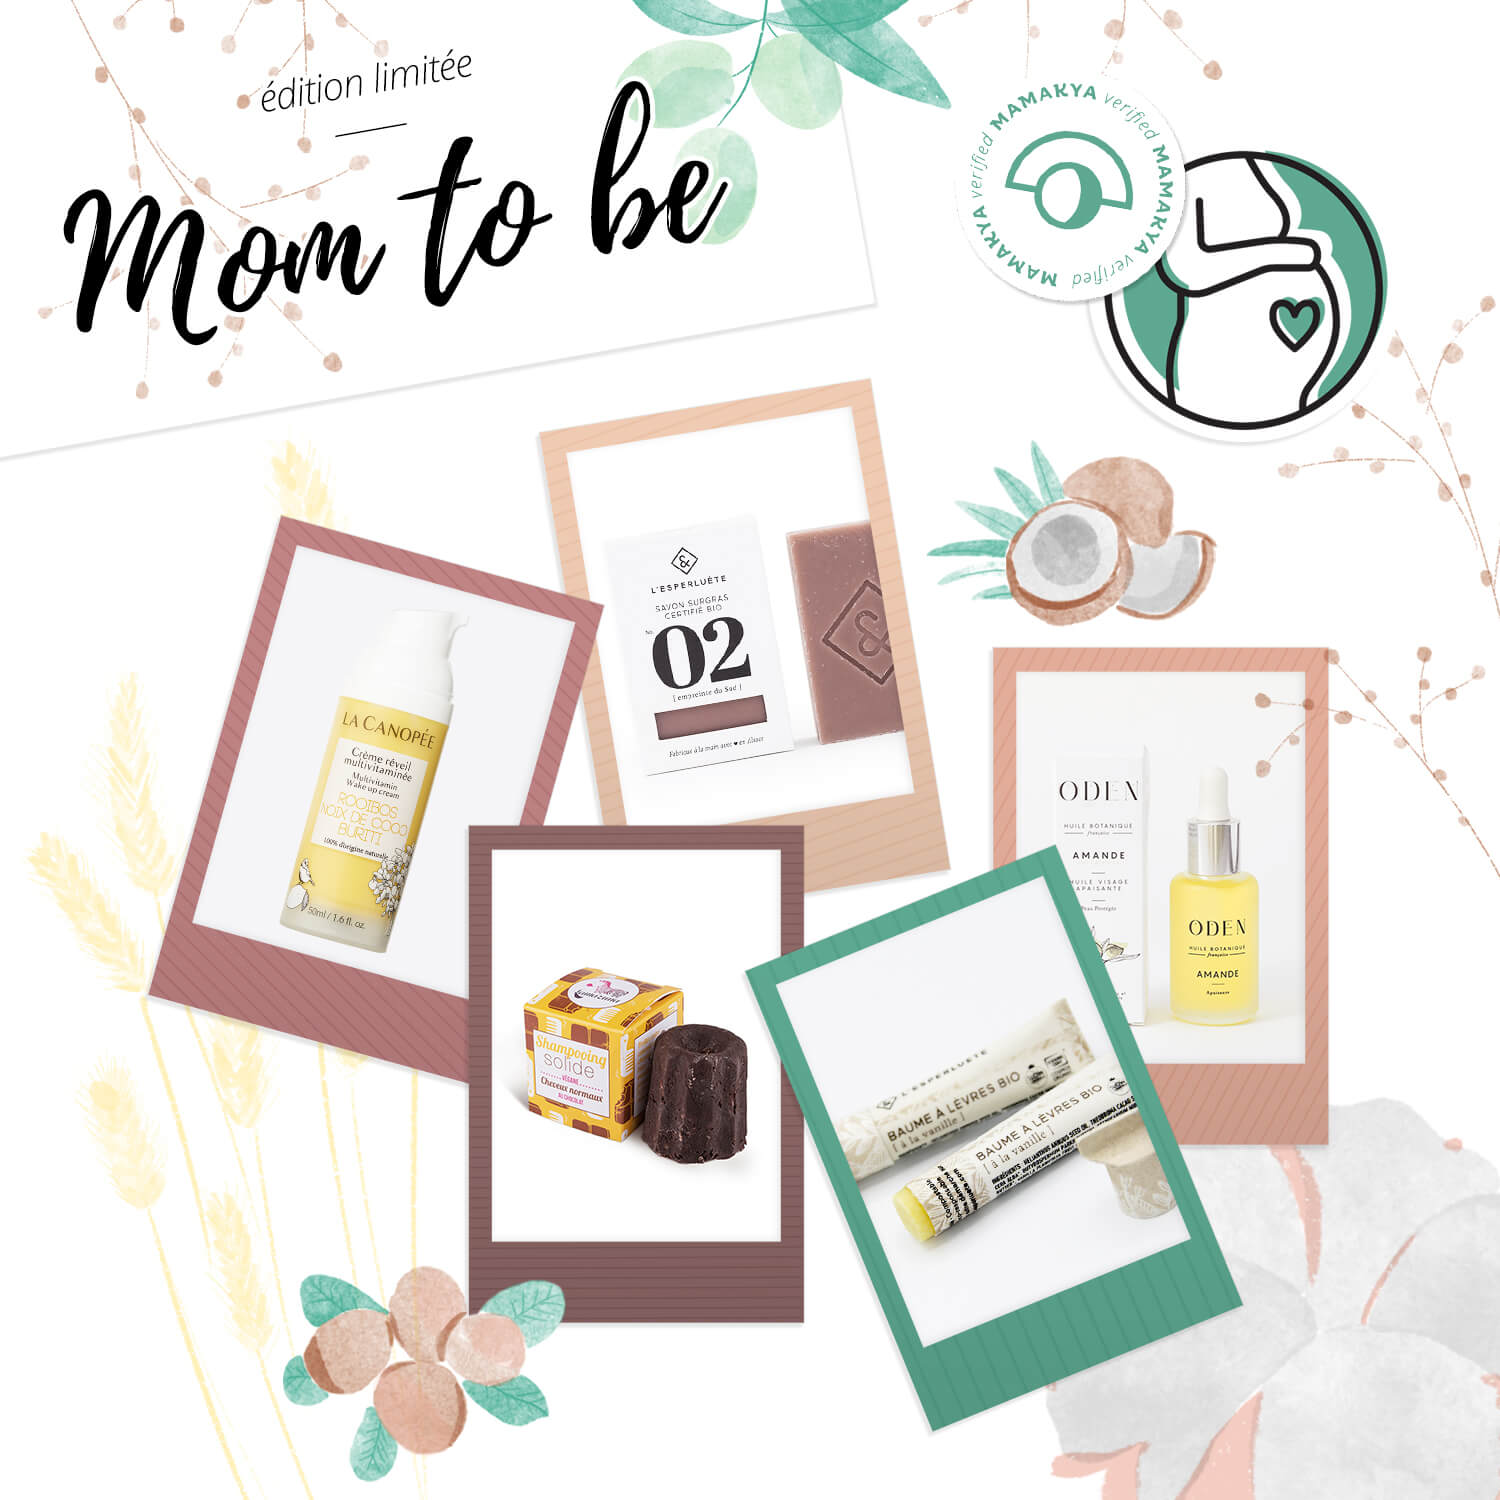 Coffret mom to be. Collage de photo des cinq produits du coffret.